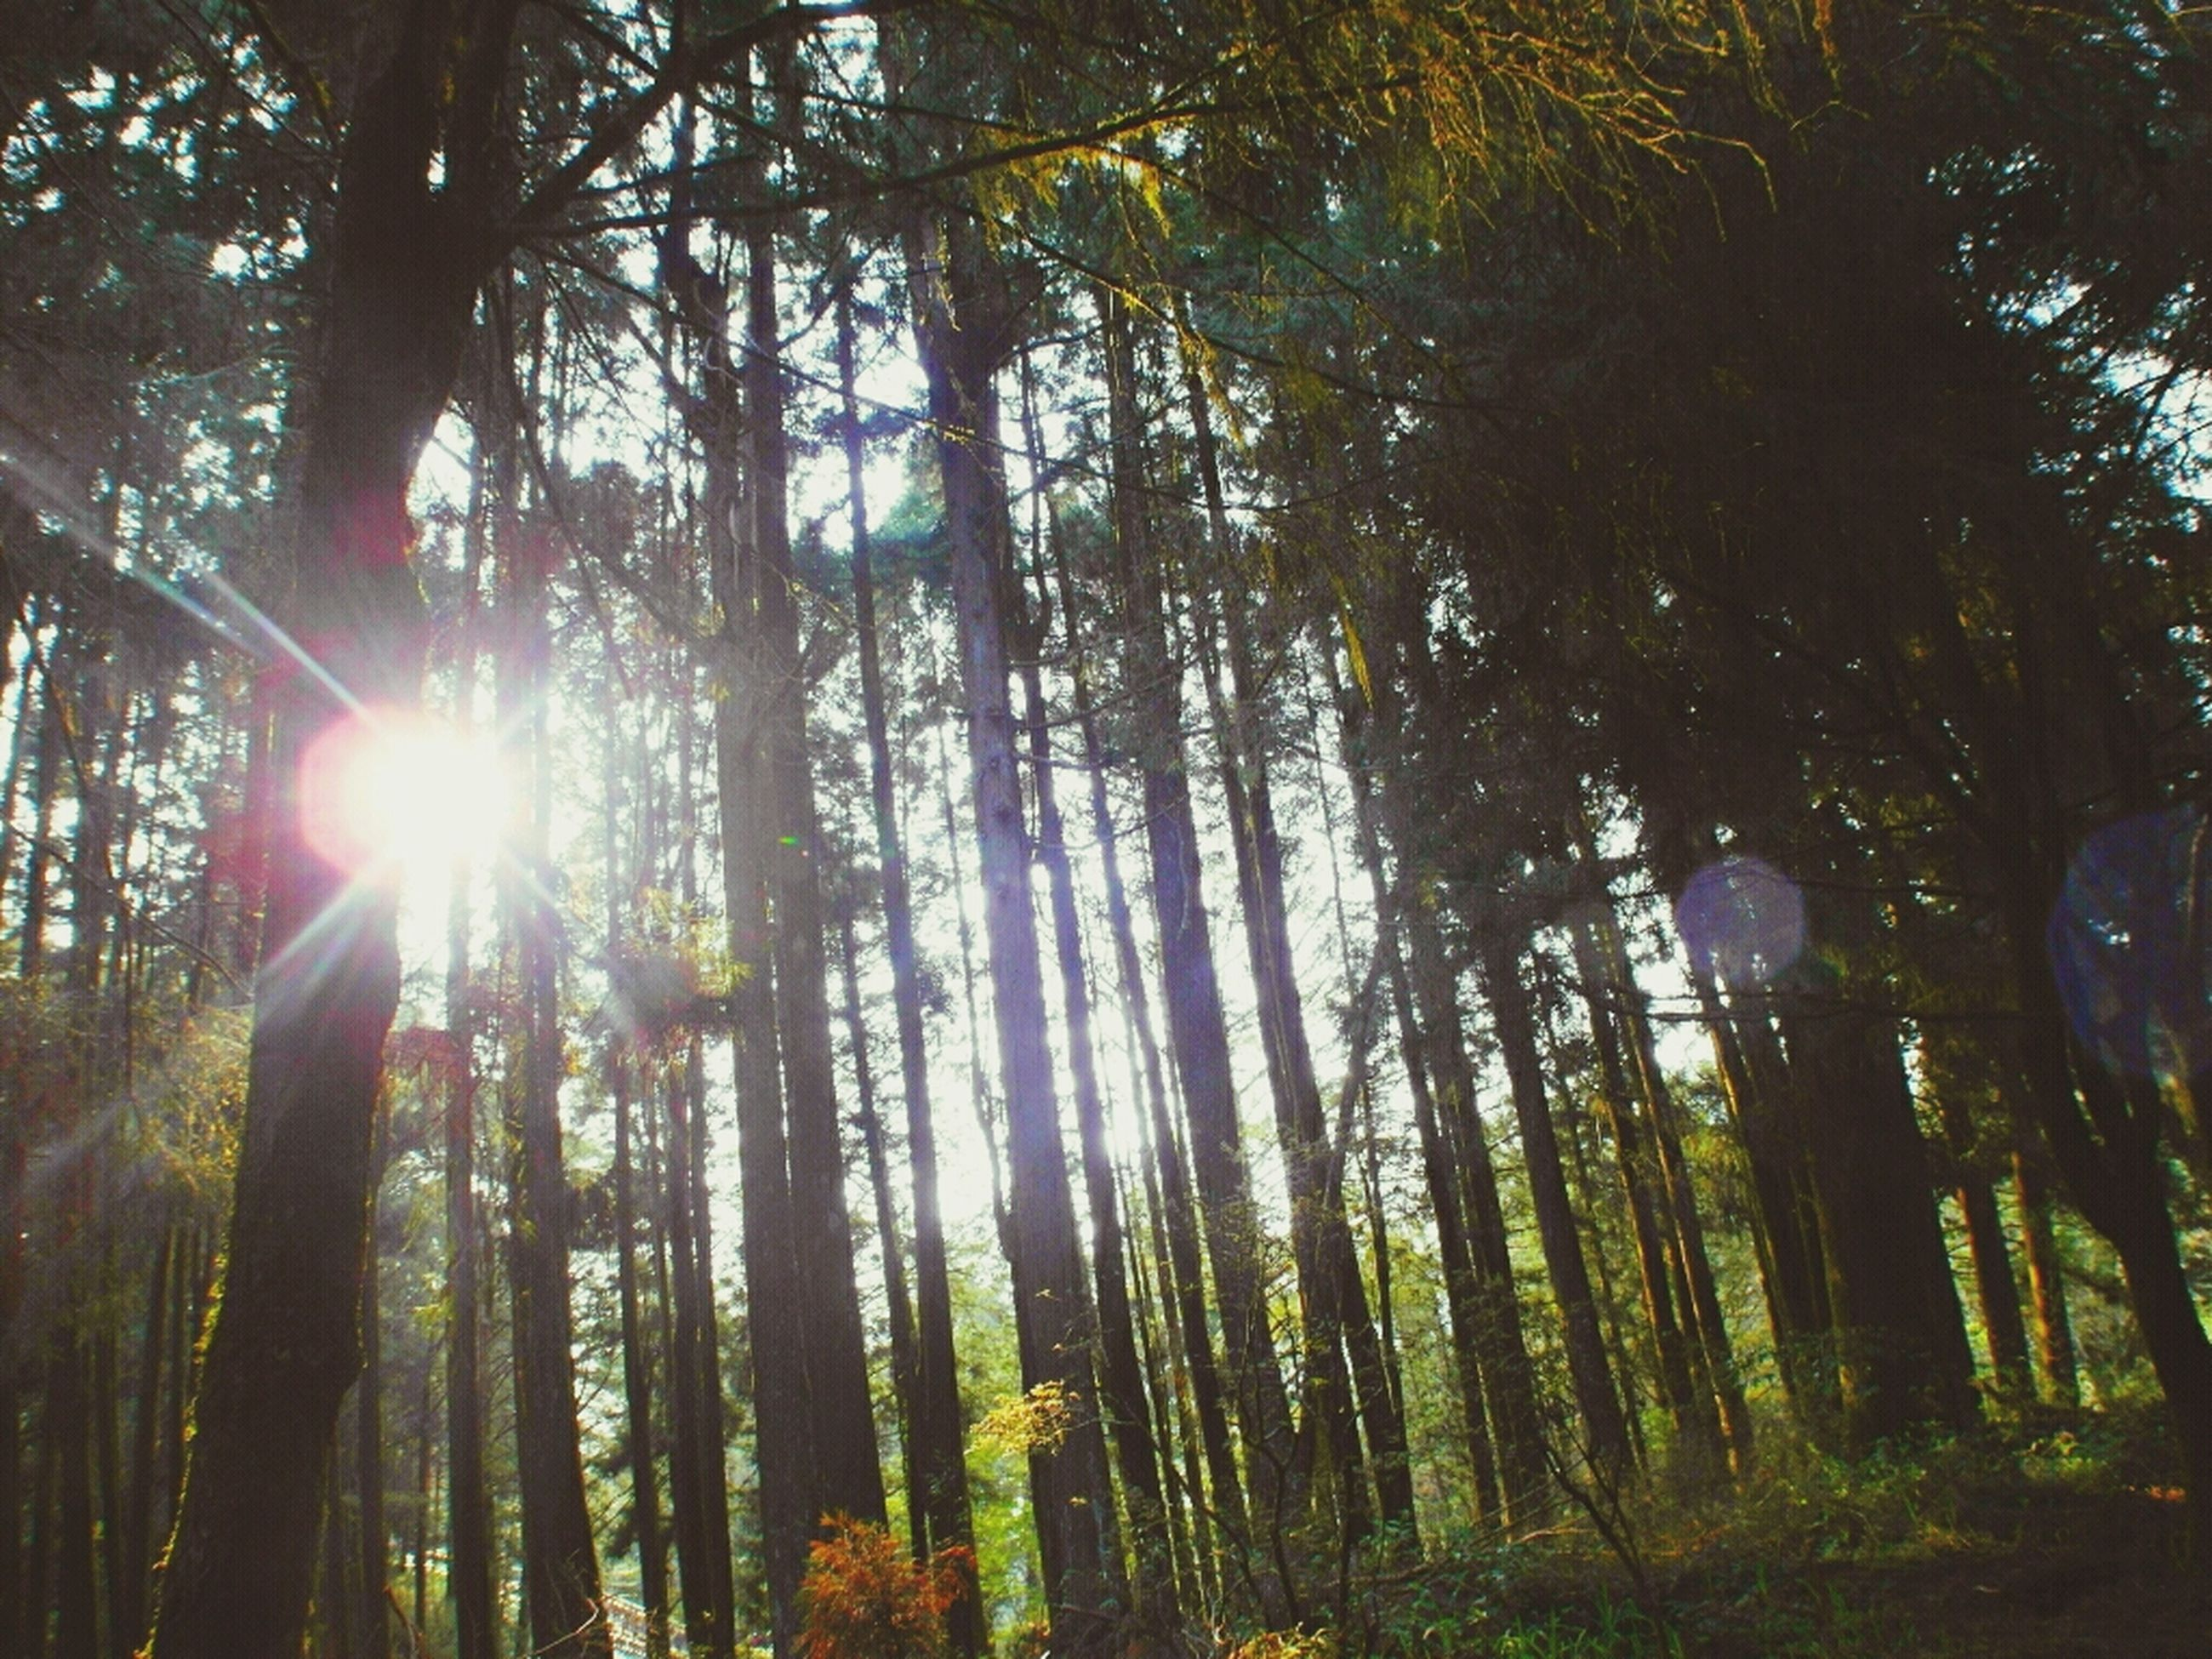 tree, sun, sunbeam, tranquility, sunlight, growth, forest, tree trunk, lens flare, nature, beauty in nature, tranquil scene, woodland, low angle view, scenics, branch, back lit, sunny, non-urban scene, idyllic